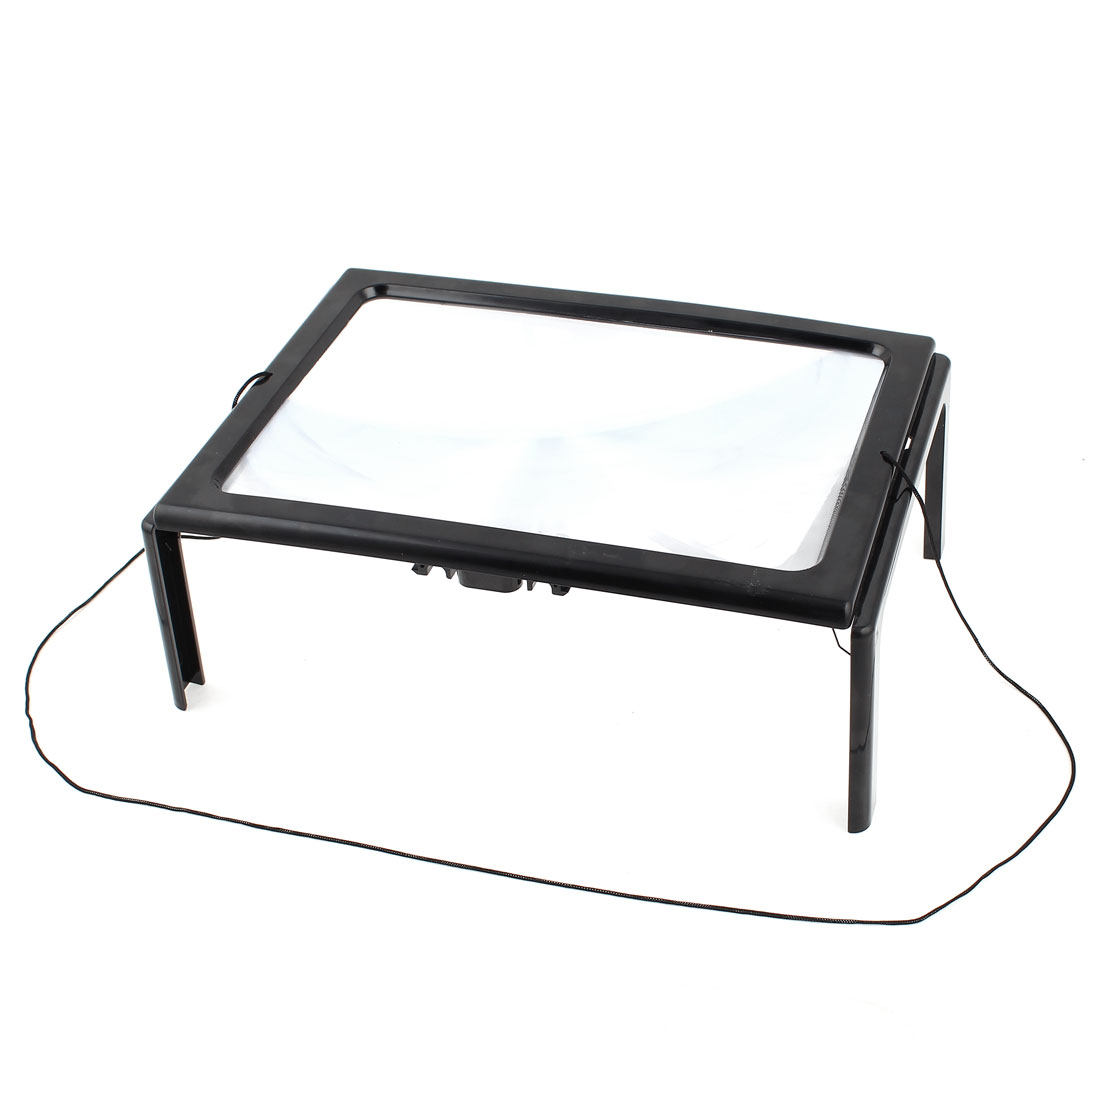 Foldable A4 Size Hands Free White LED Lights 3x Magnifying Lens Reading Magnifier